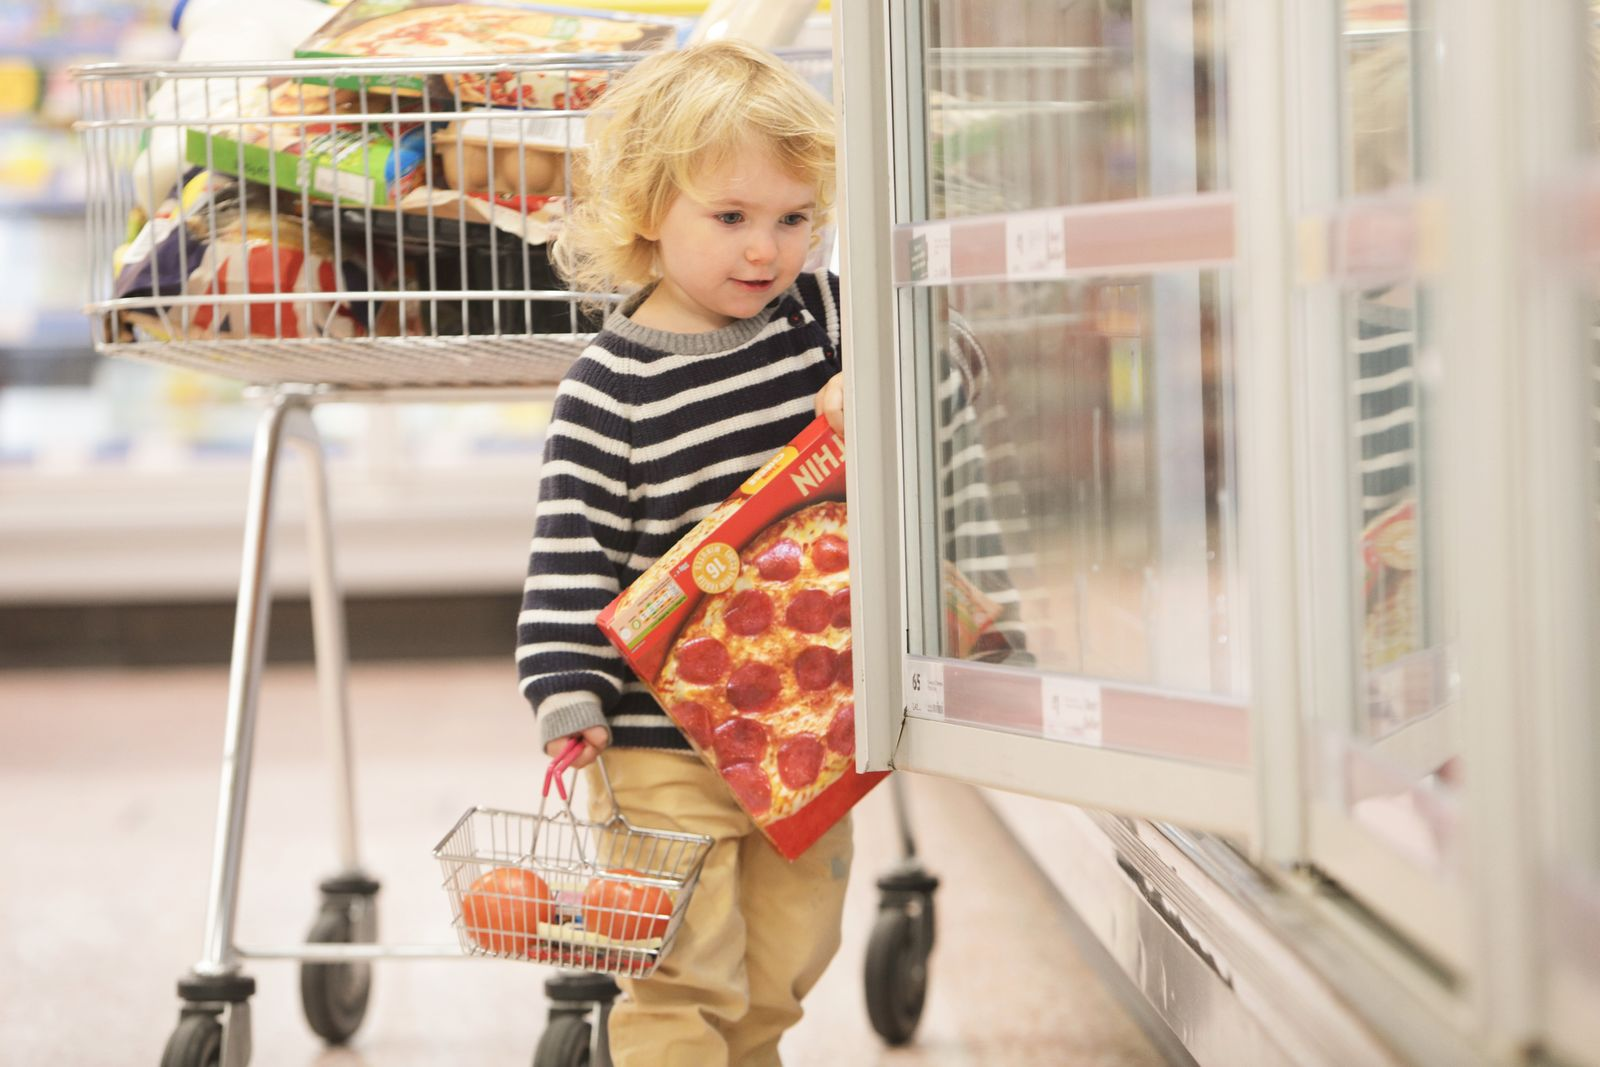 Toddler choosing pizza in supermarket